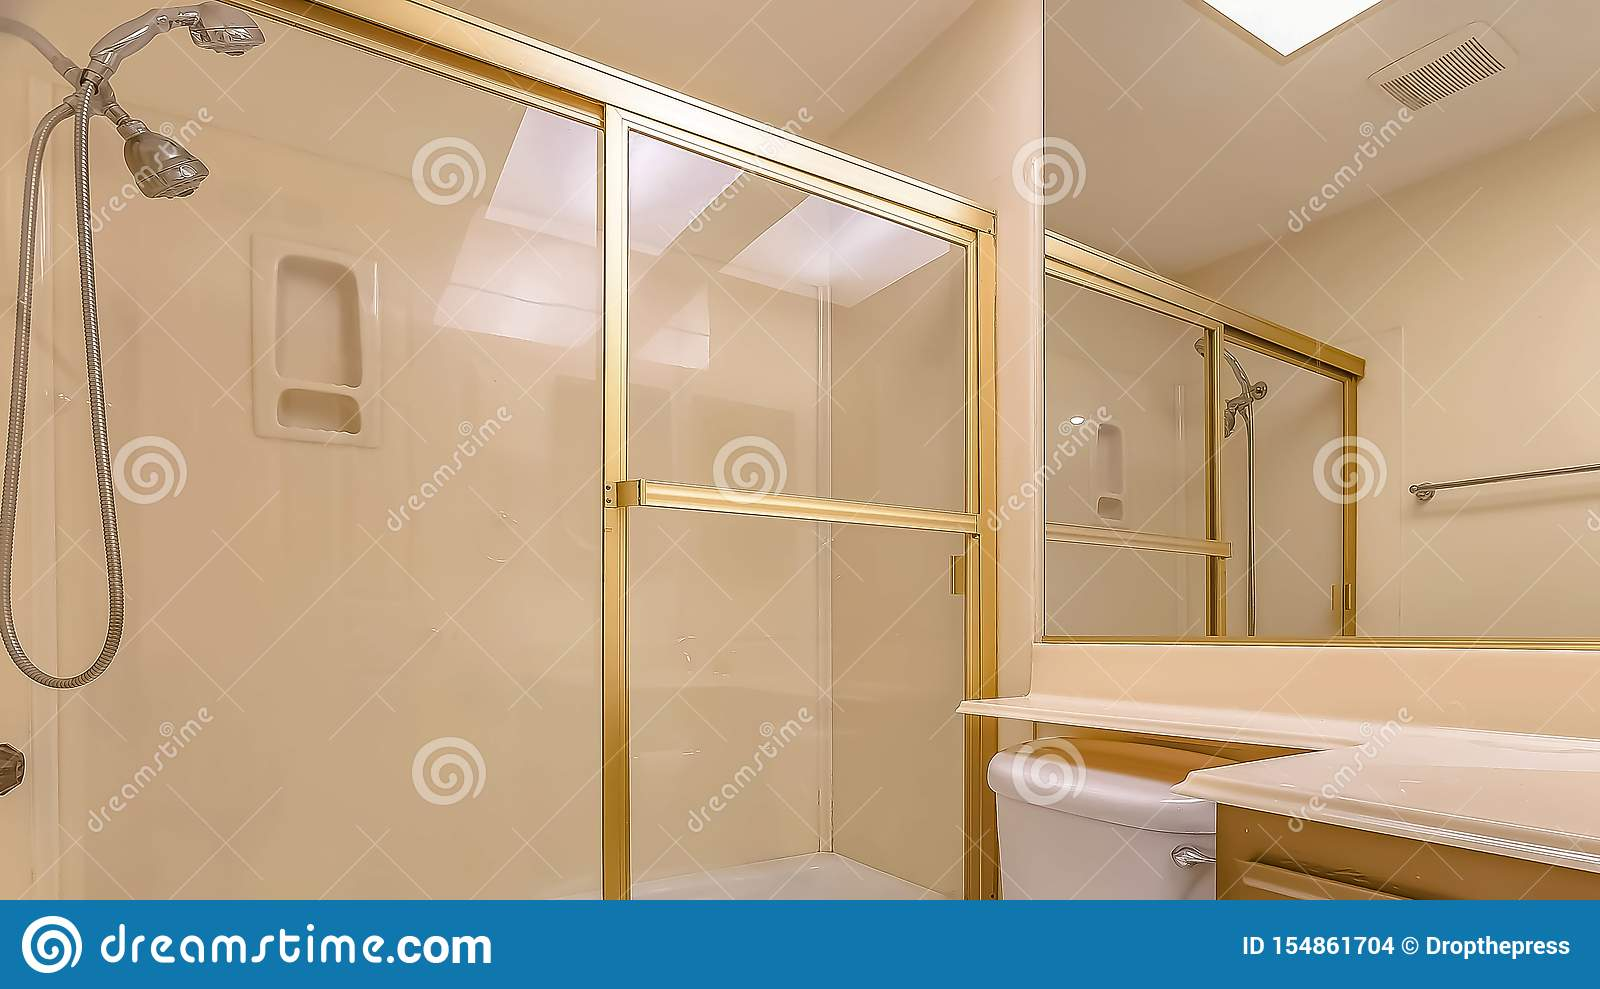 Panorama Bathroom Interior With Sink Cabinet And Toilet